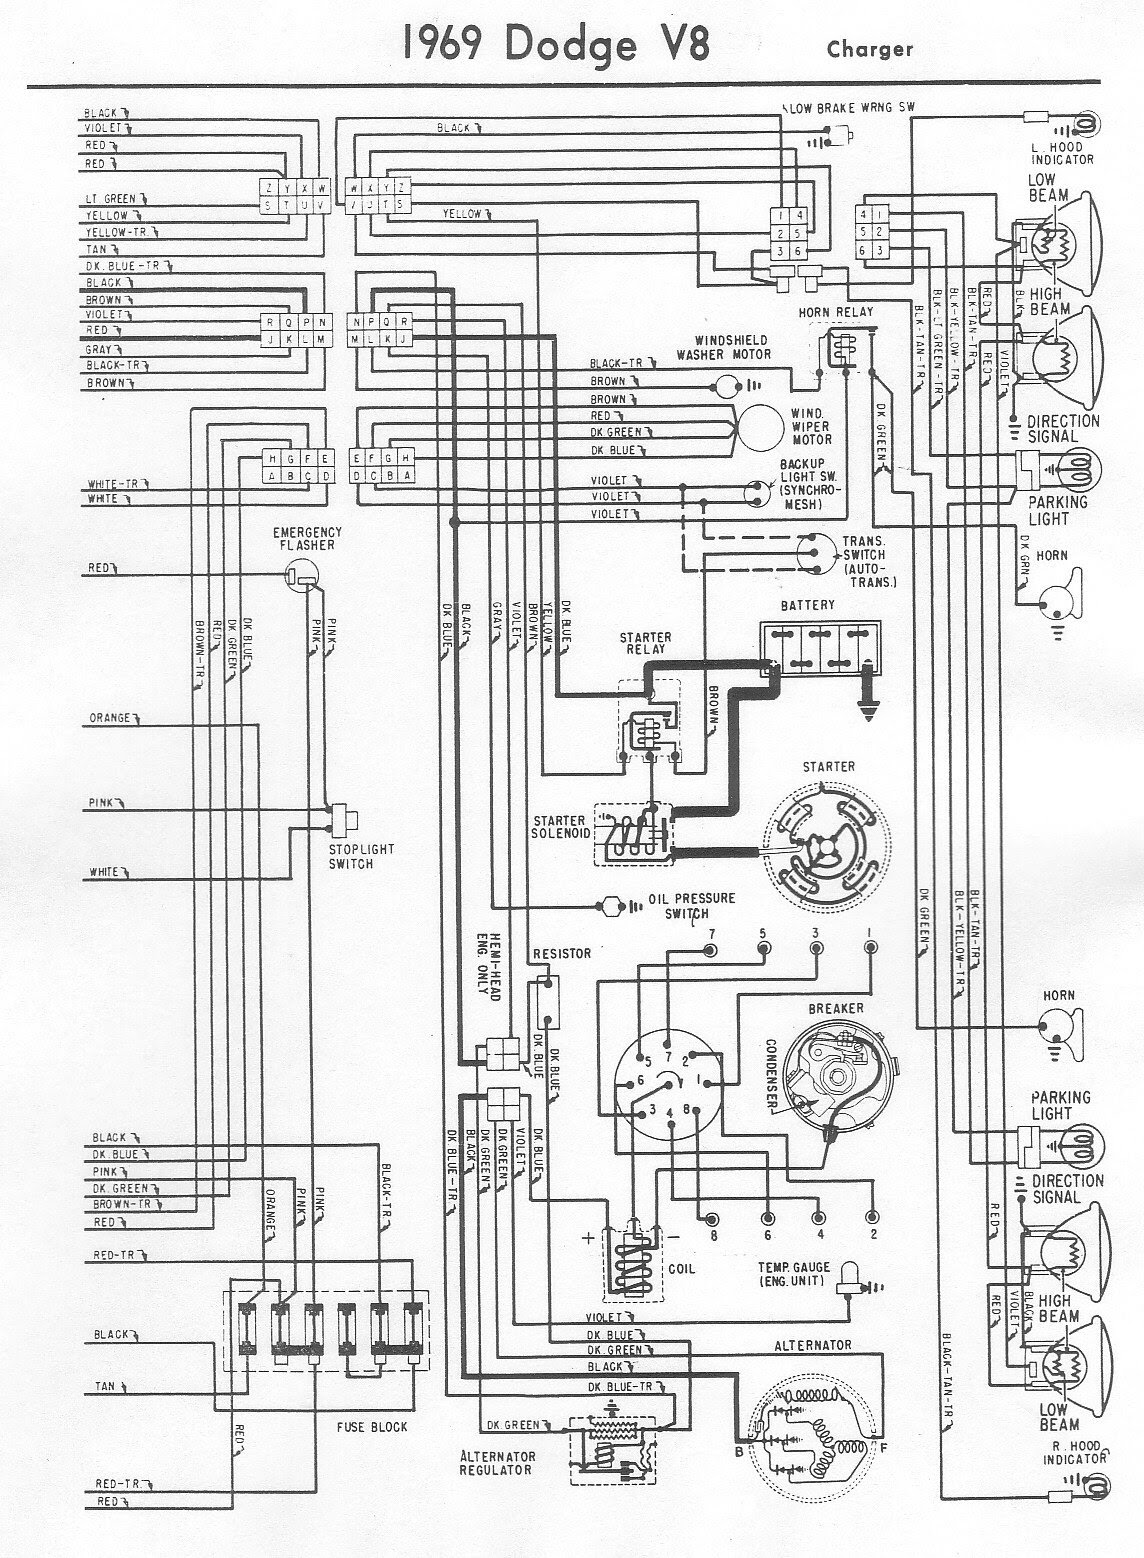 1969 Pontiac 350 Engine Diagram Wiring Schematic Wiring Diagram Academic Academic Lastanzadeltempo It